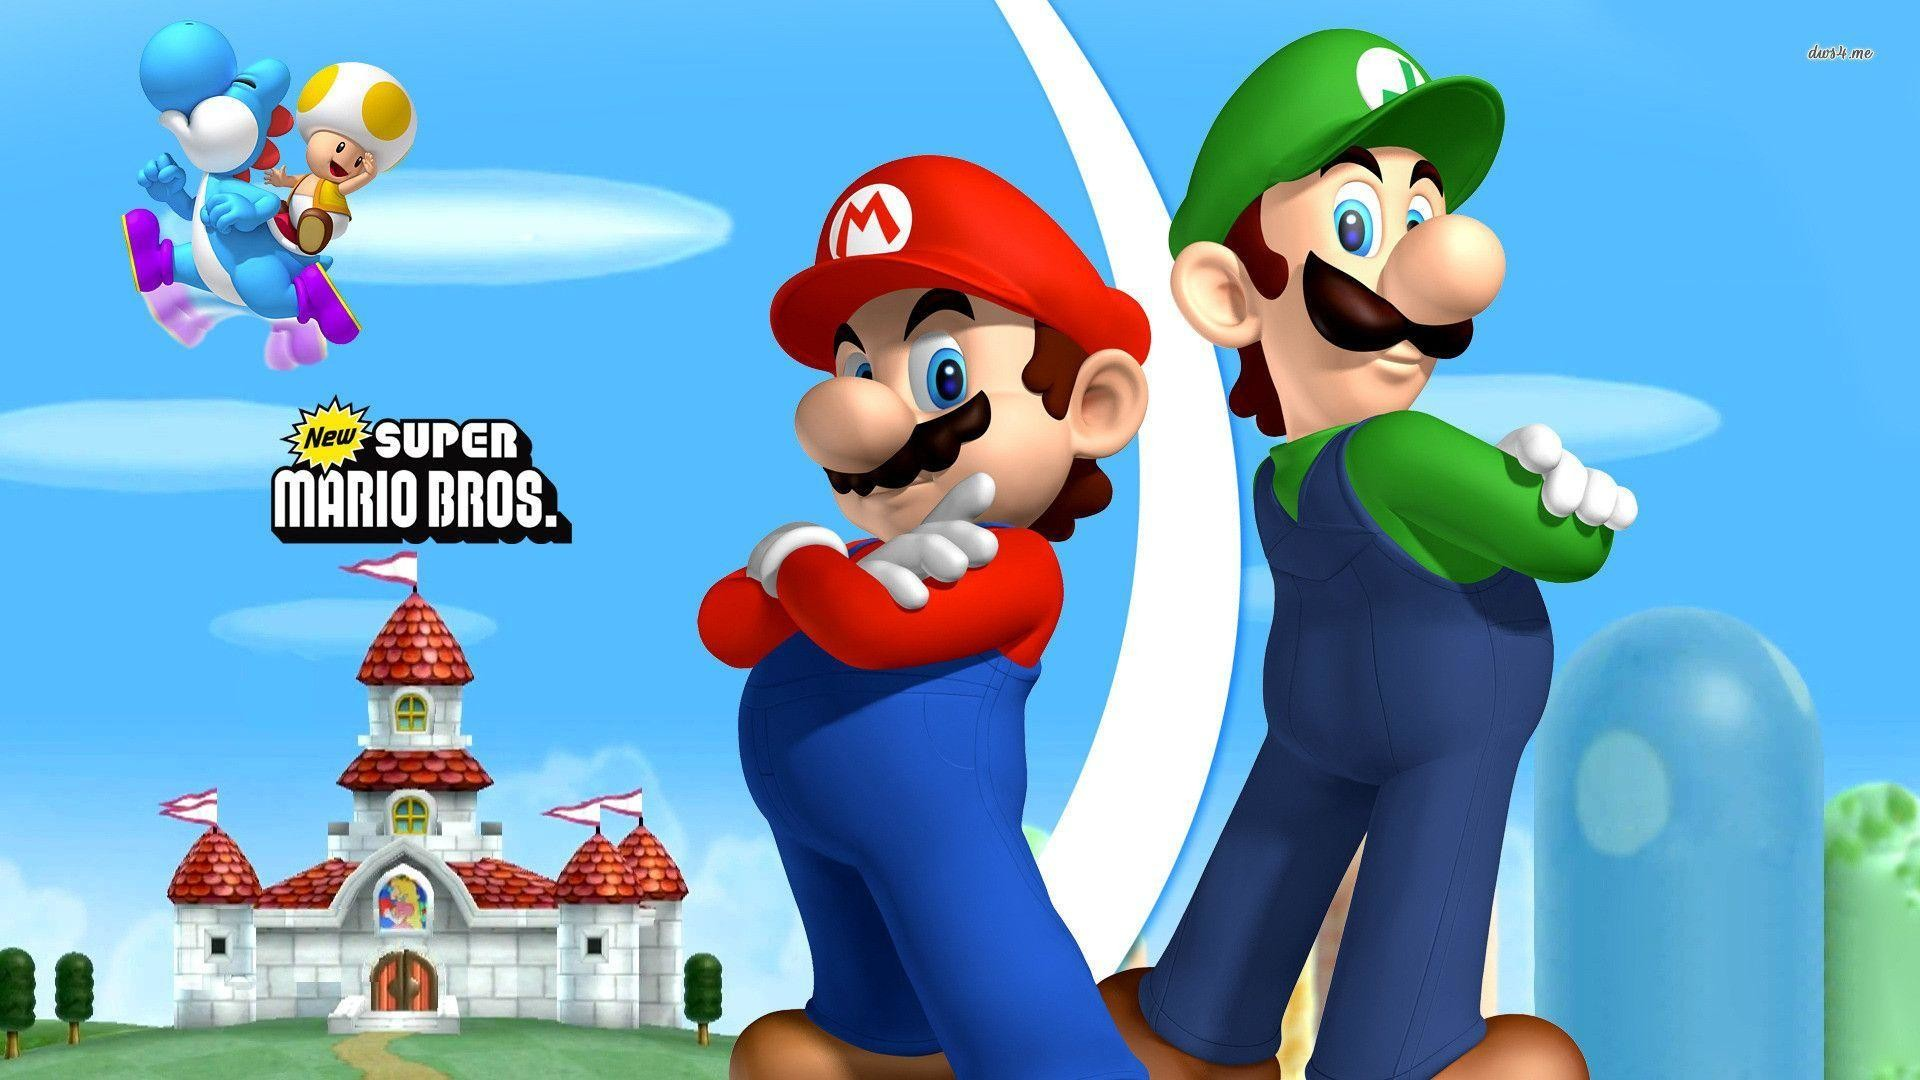 1920x1080 Mario and Luigi Exclusive HD Wallpapers #4997